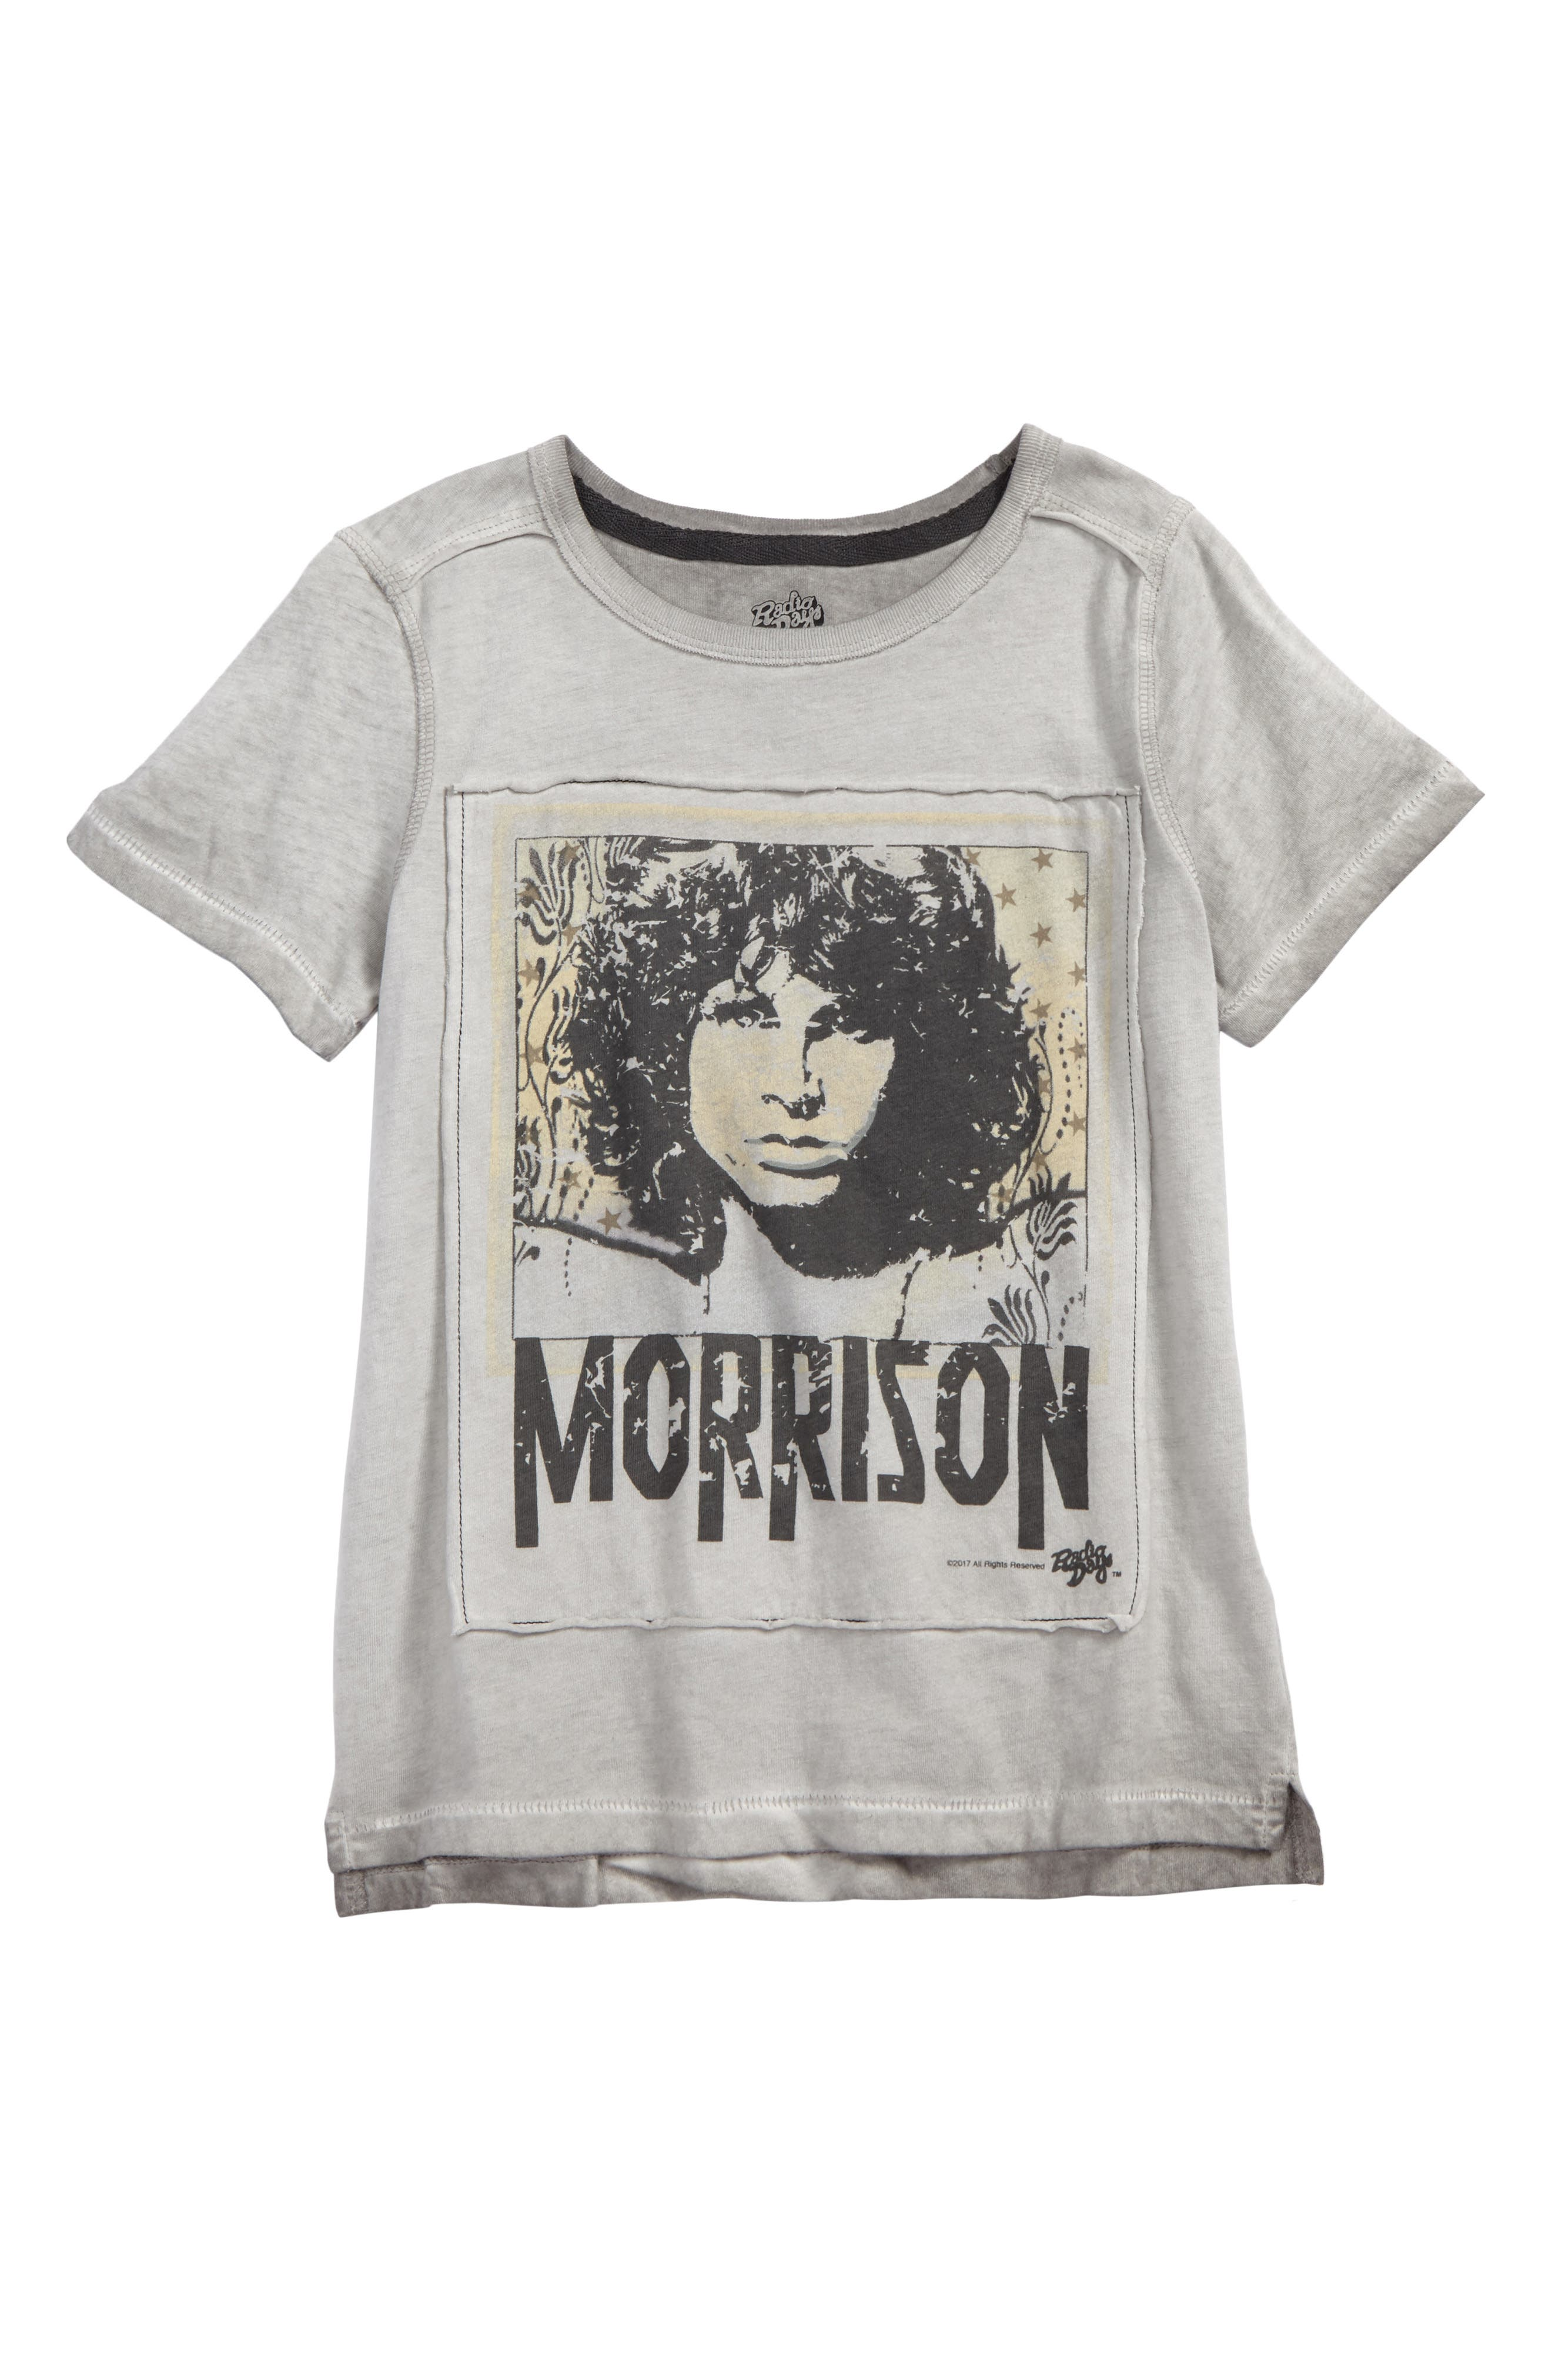 Alternate Image 1 Selected - Happy Threads Jim Morrison Graphic T-Shirt (Big Boys)